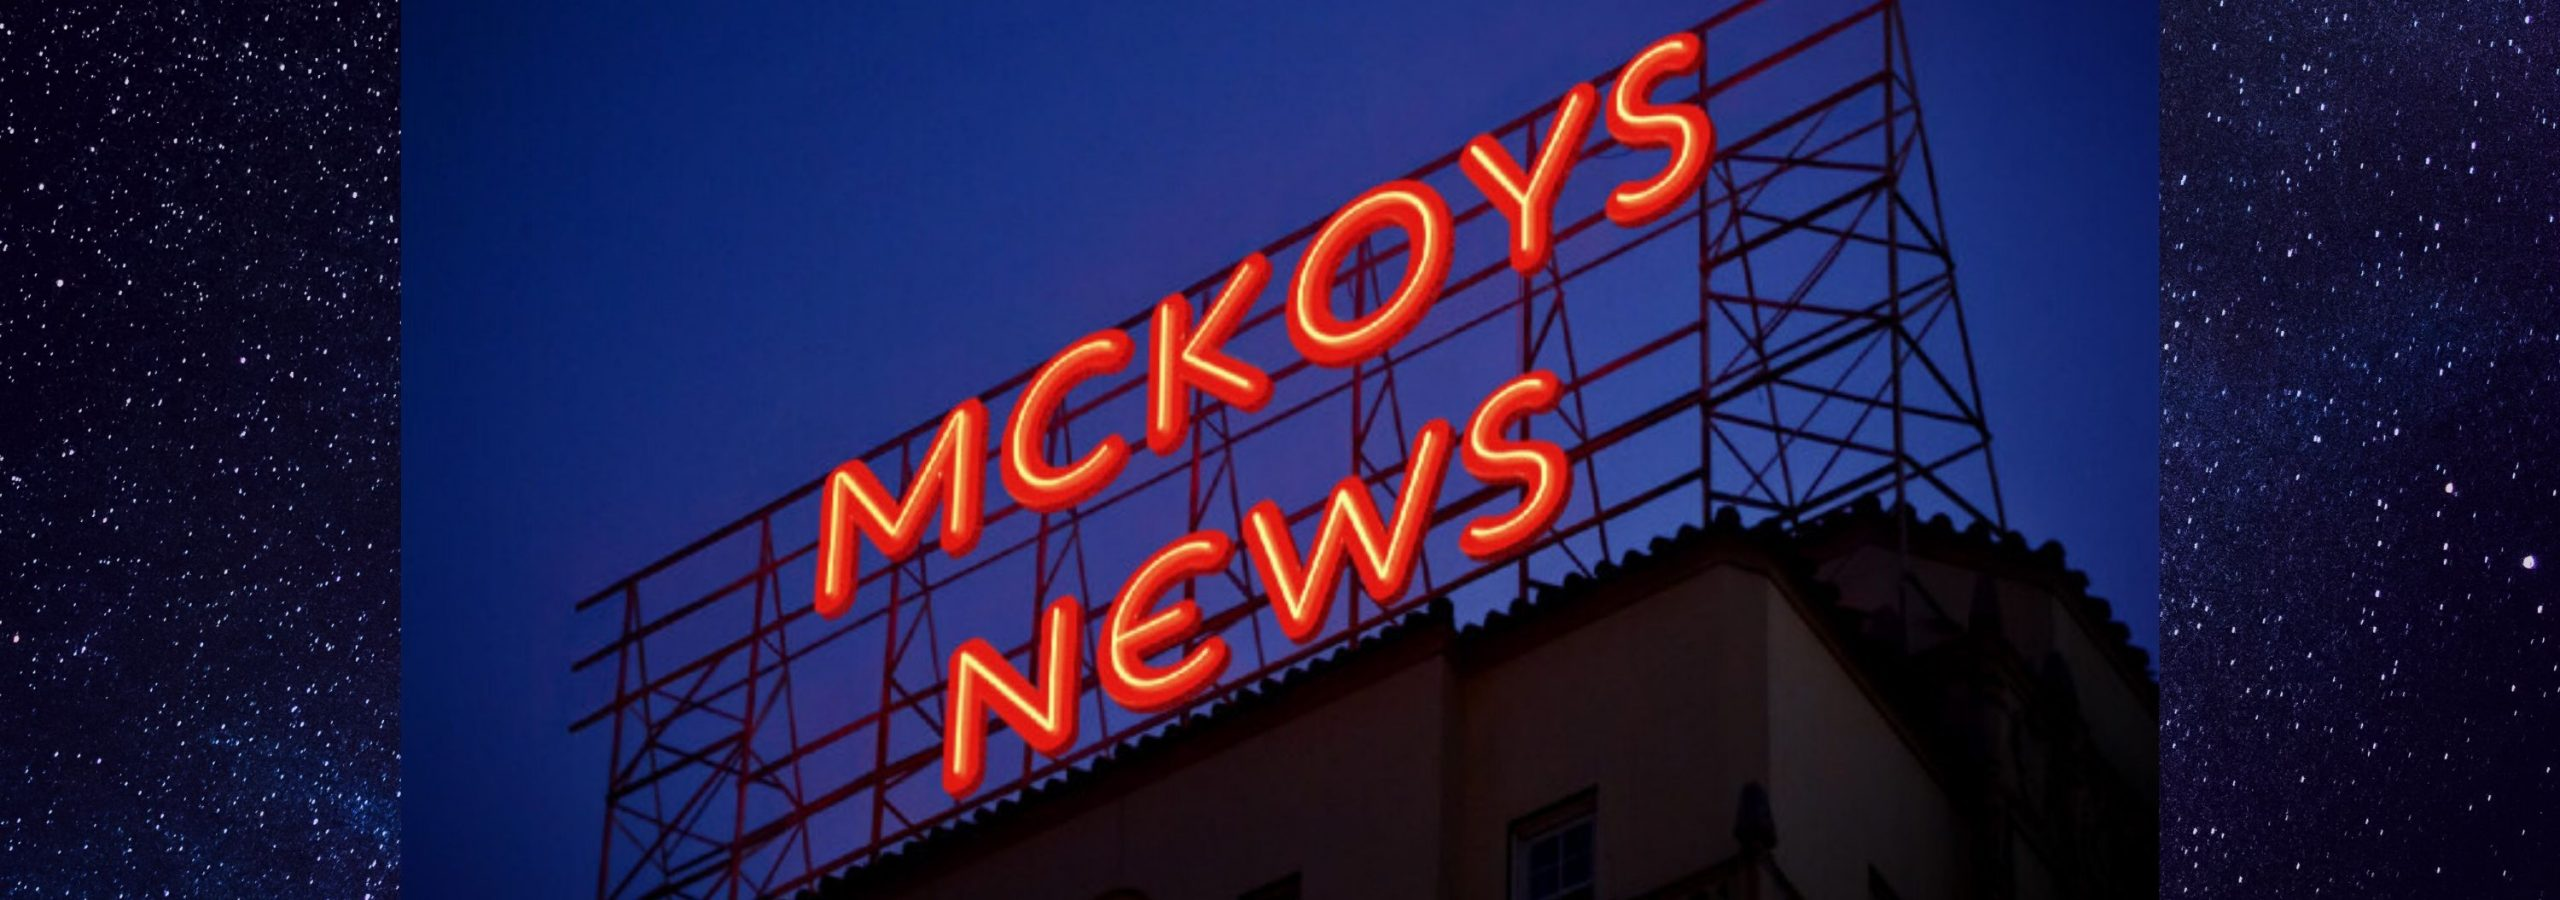 Mckoy's News - Jamaica News